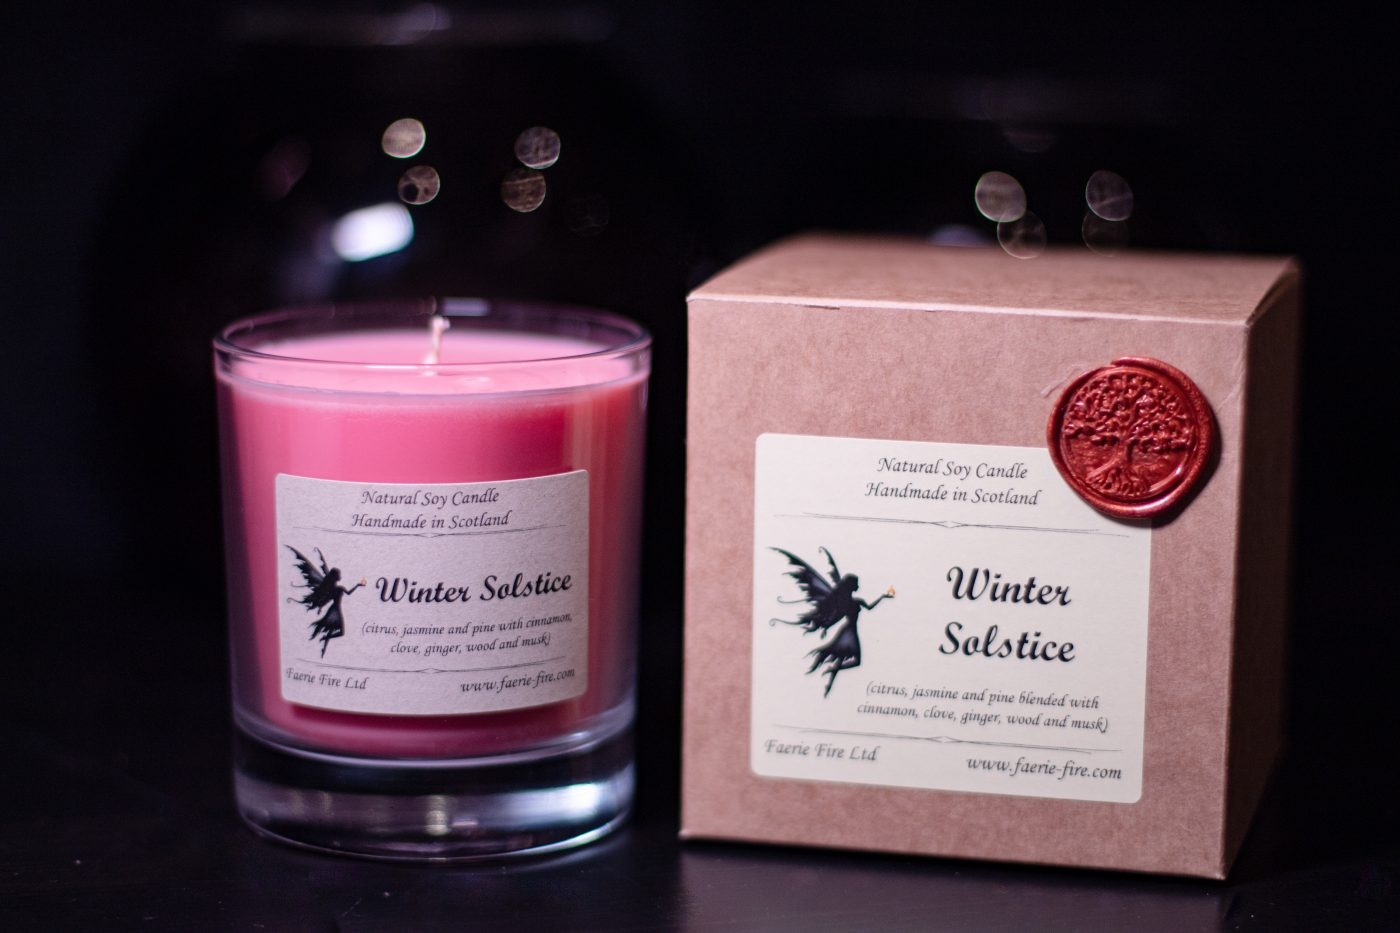 Winter Solstice Soy Wax Jar Candle 3 scaled